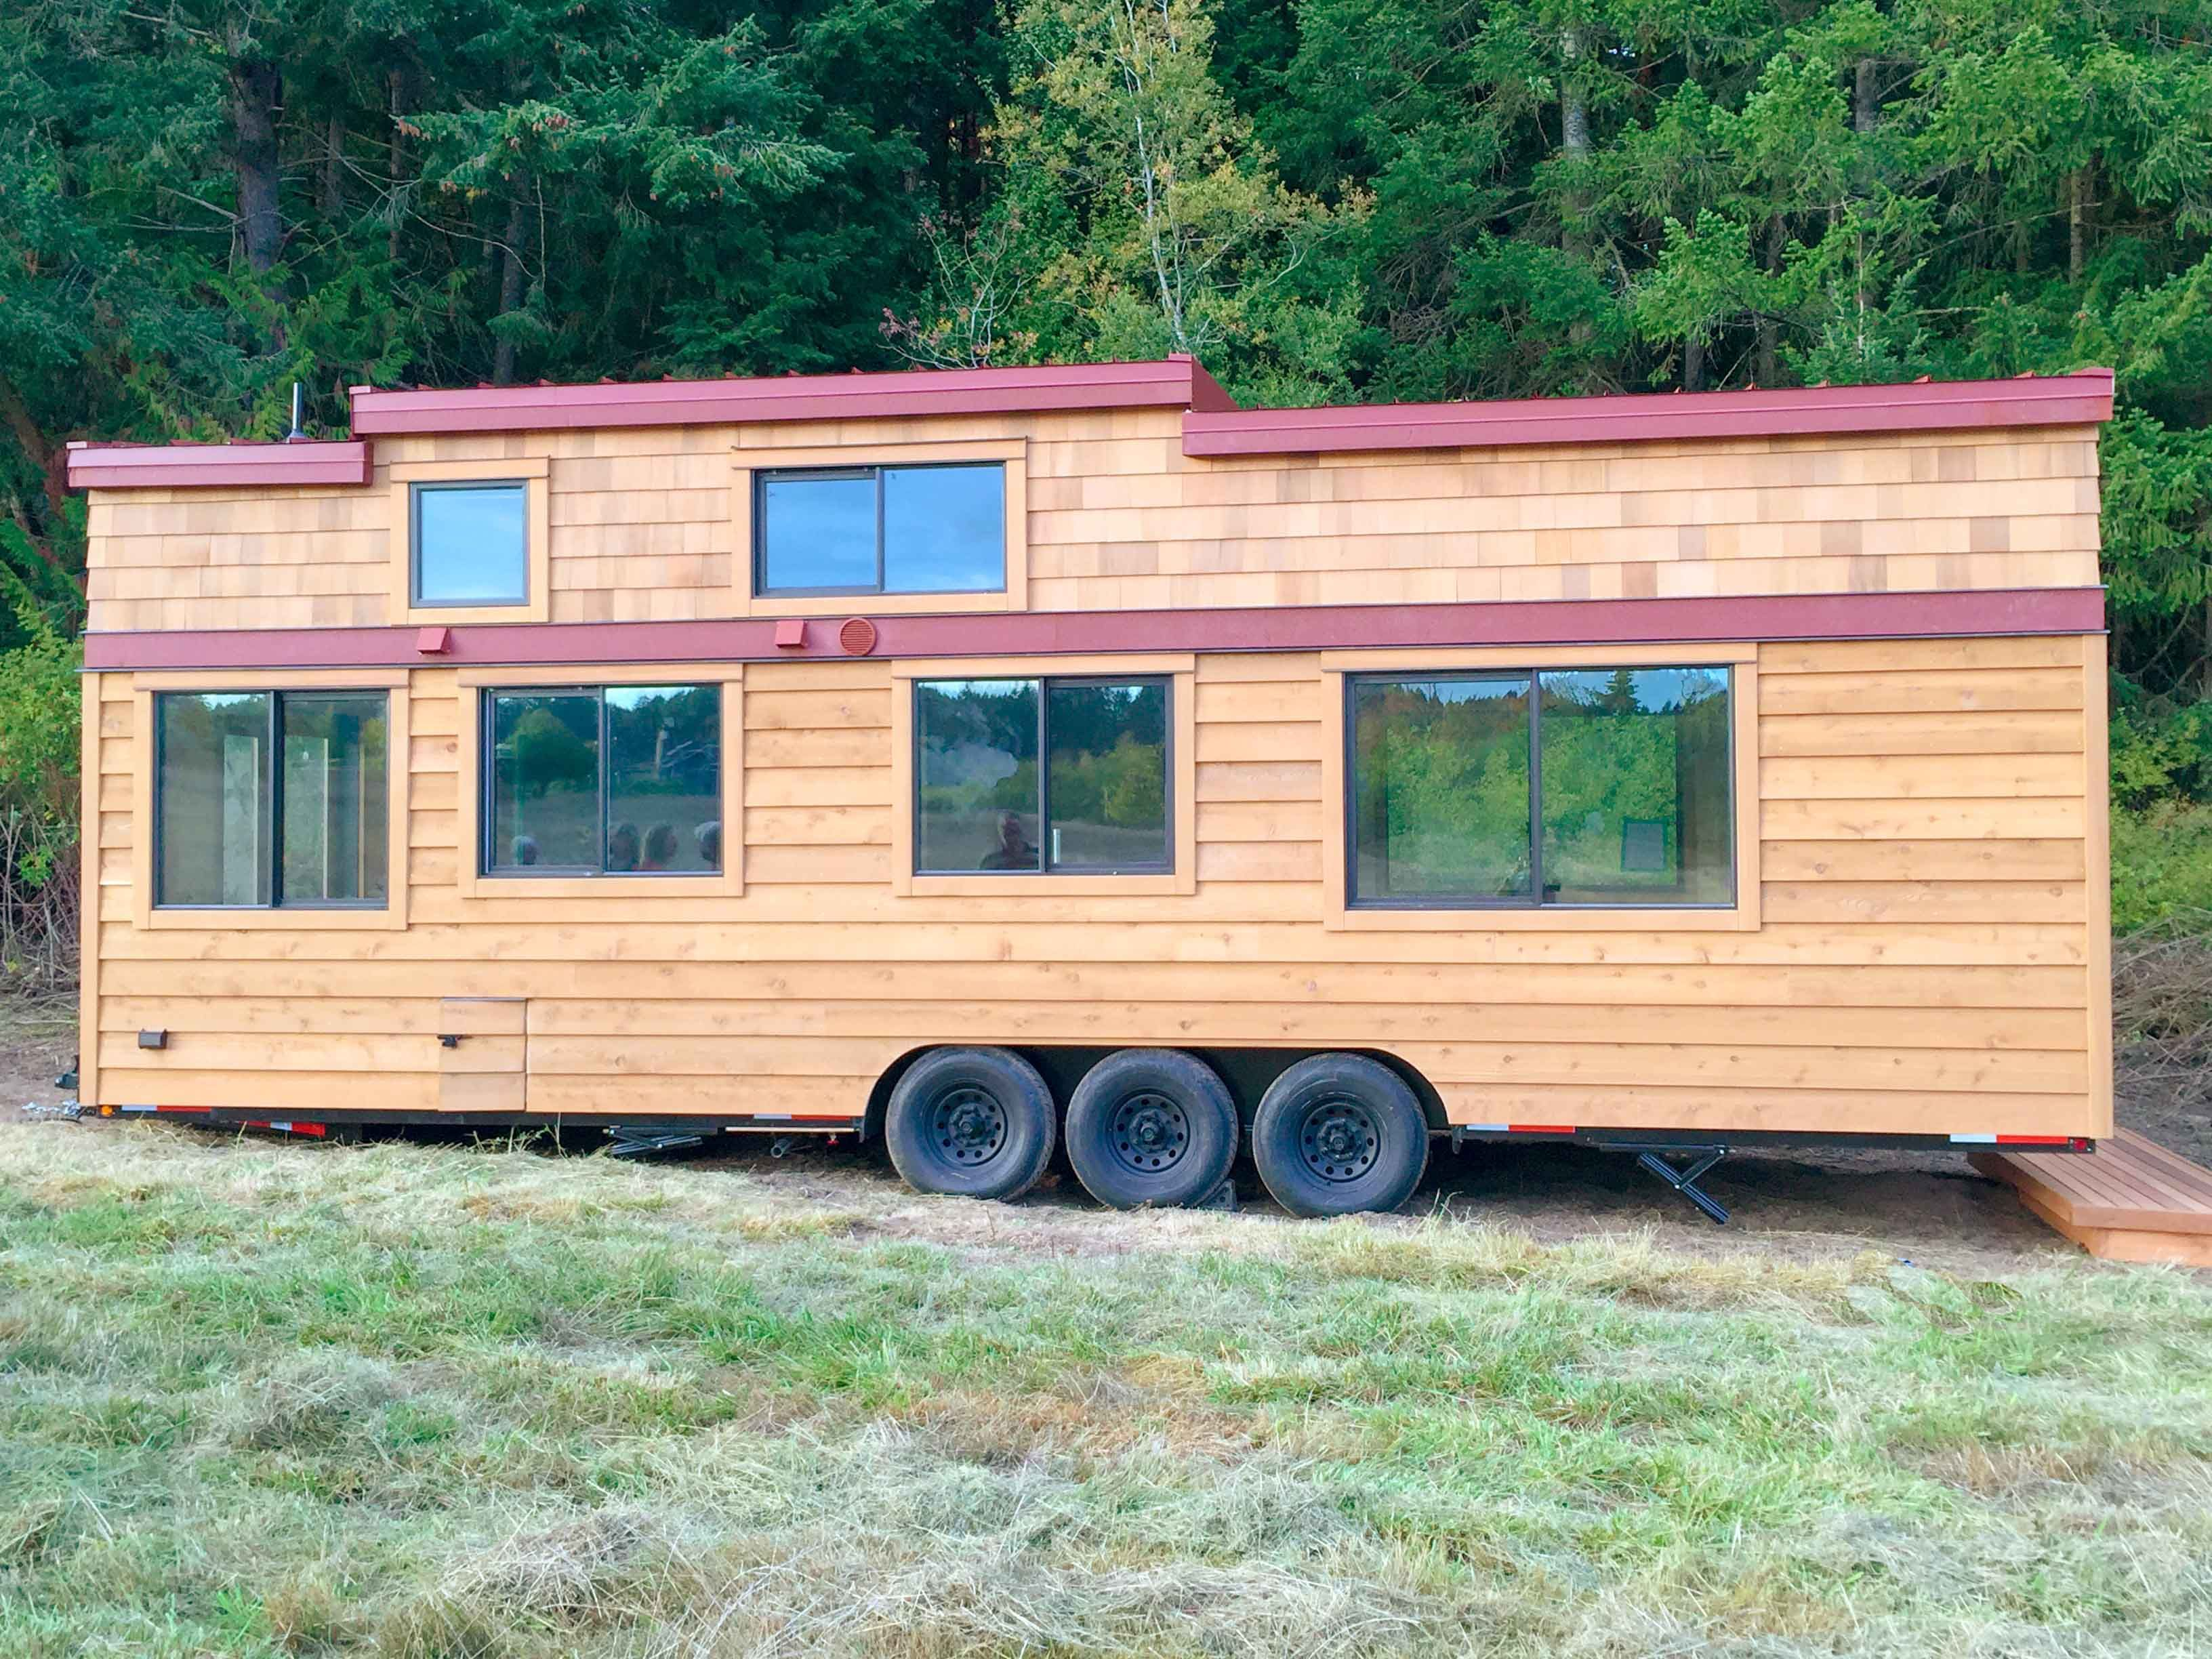 Chinook 30 Tiny House The Chinook 30 Tiny House Largest Tinyhouse Model  Build Yet. The